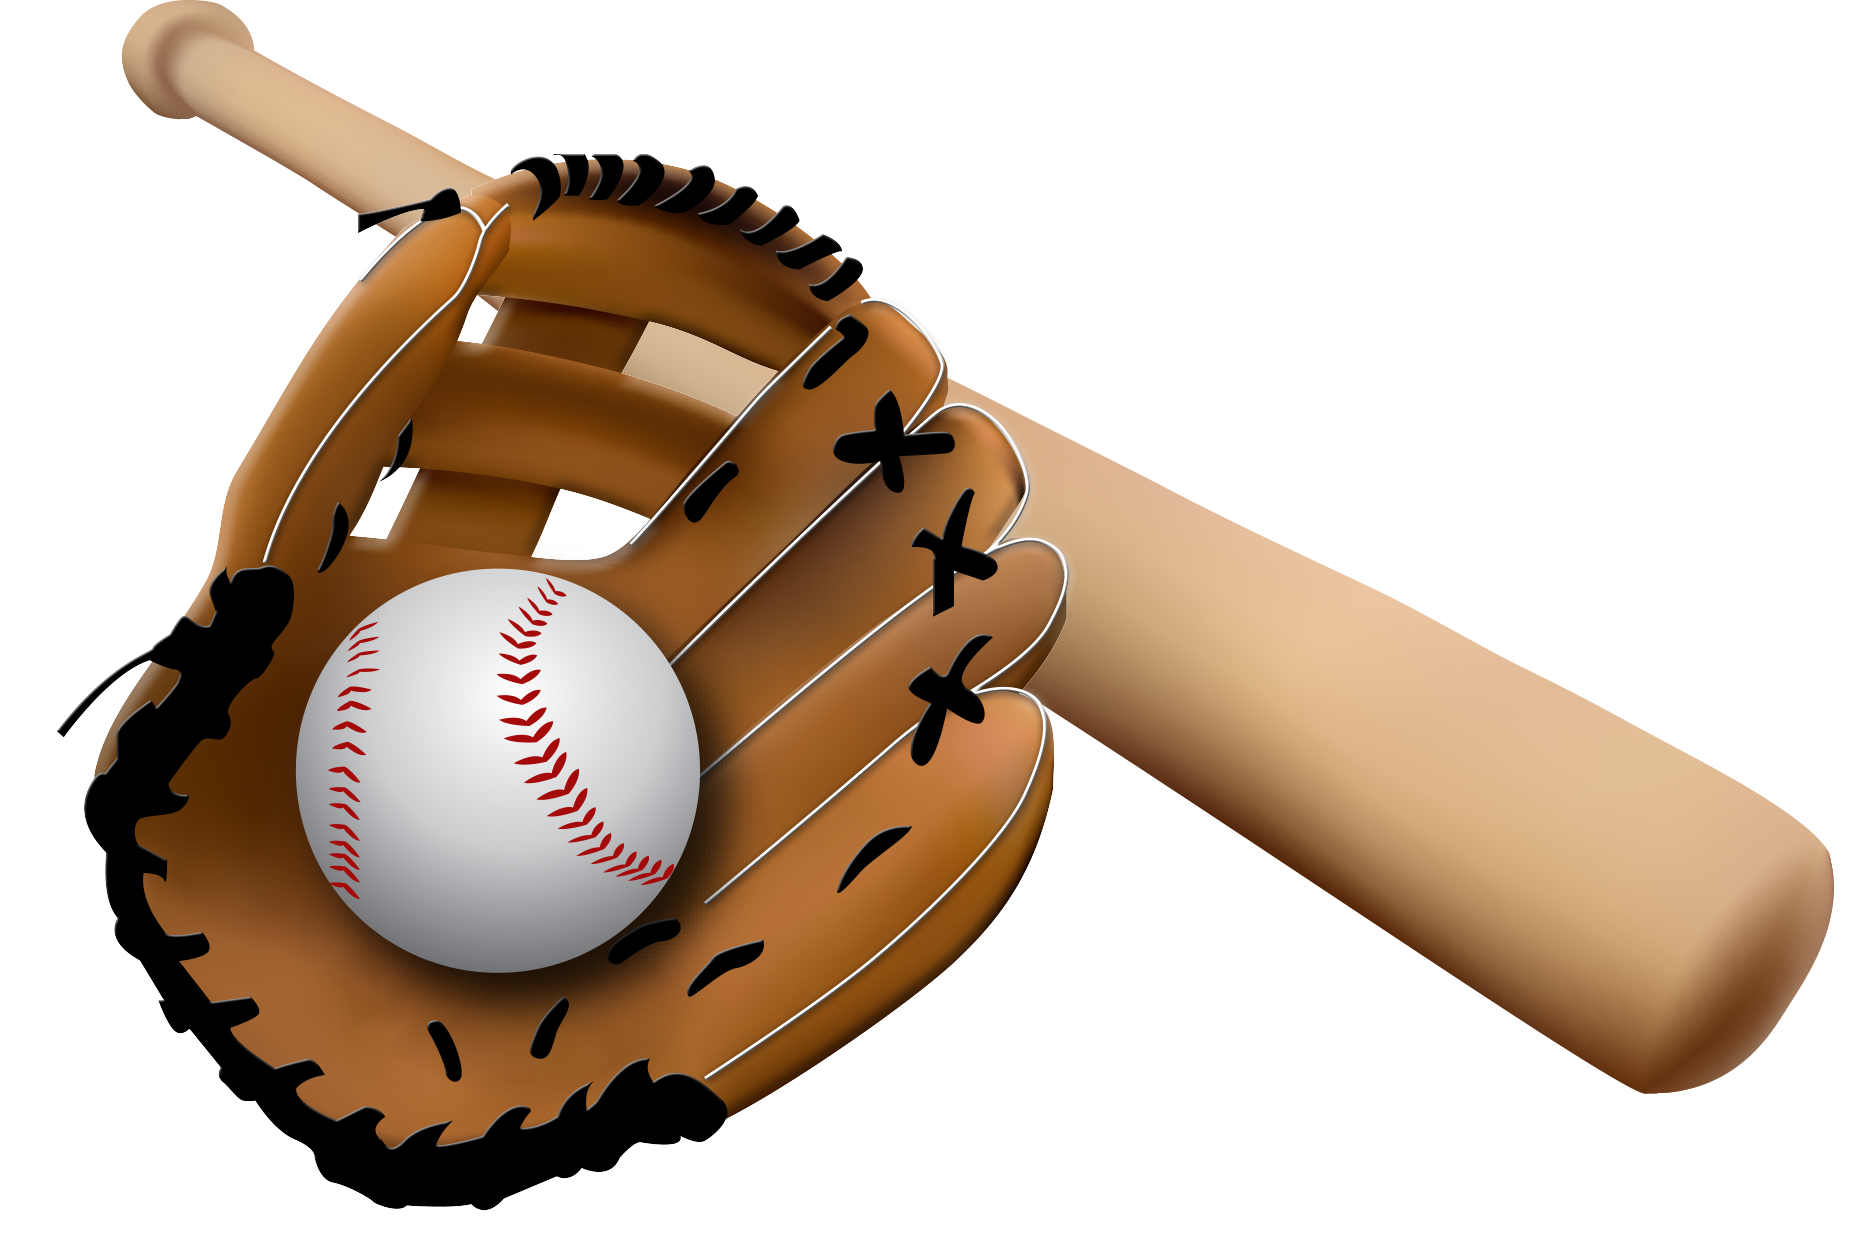 Baseball glove and bat clipart clipart royalty free download Baseball PNG images free download, baseball ball PNG, baseball bat PNG clipart royalty free download